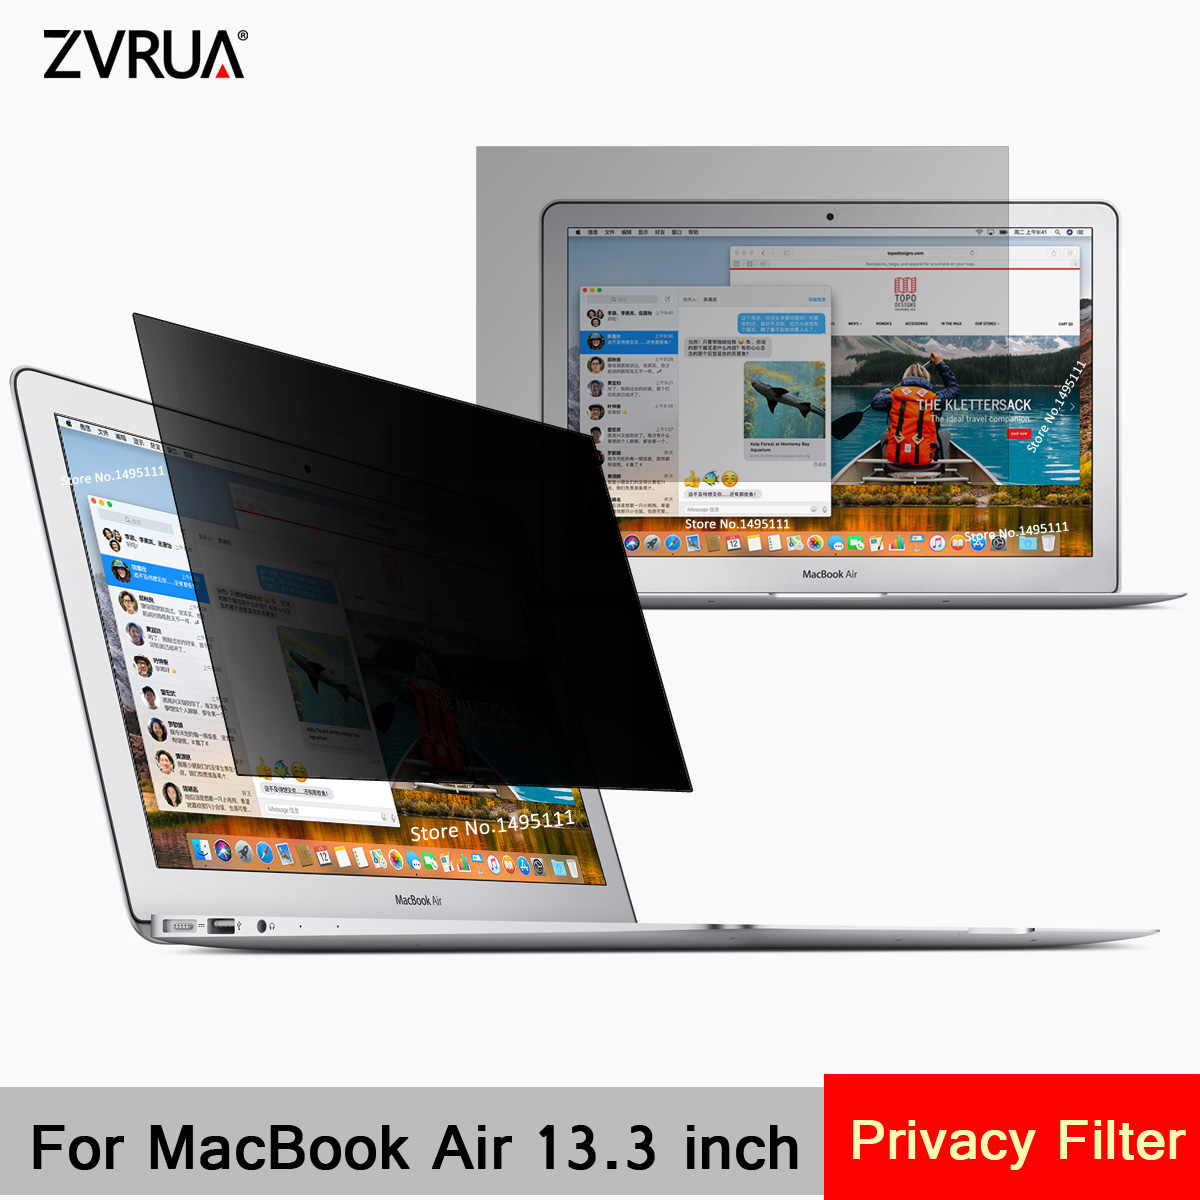 Untuk Apple MacBook Air 13.3 Inch (286 Mm * 179 Mm) filter Privasi Laptop Notebook Anti-Silau Pelindung Layar Film Pelindung